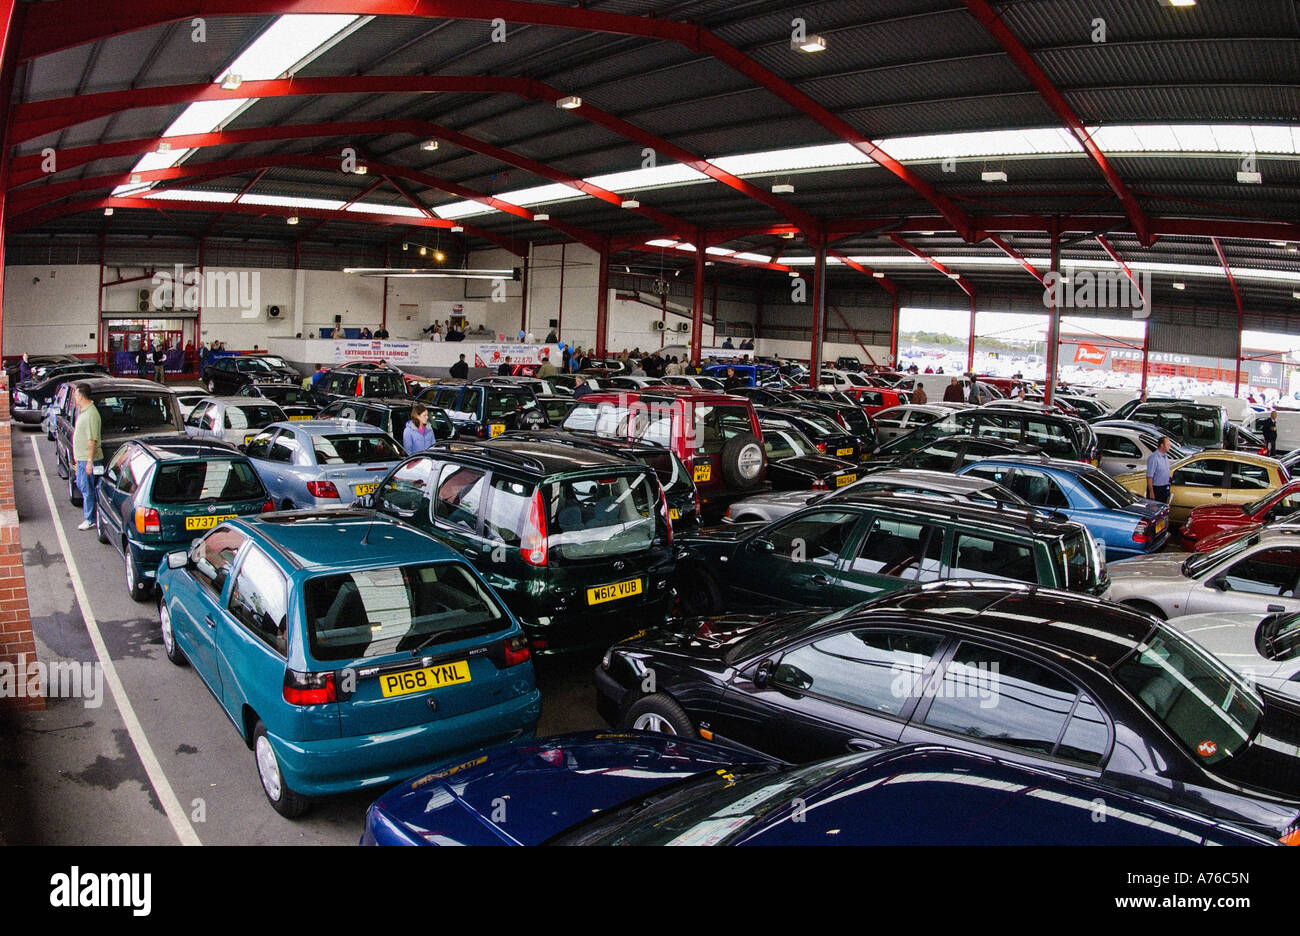 Auction Cars For Sale >> Lots Of Cars At Auction Ready For Sale Stock Photo 11739008